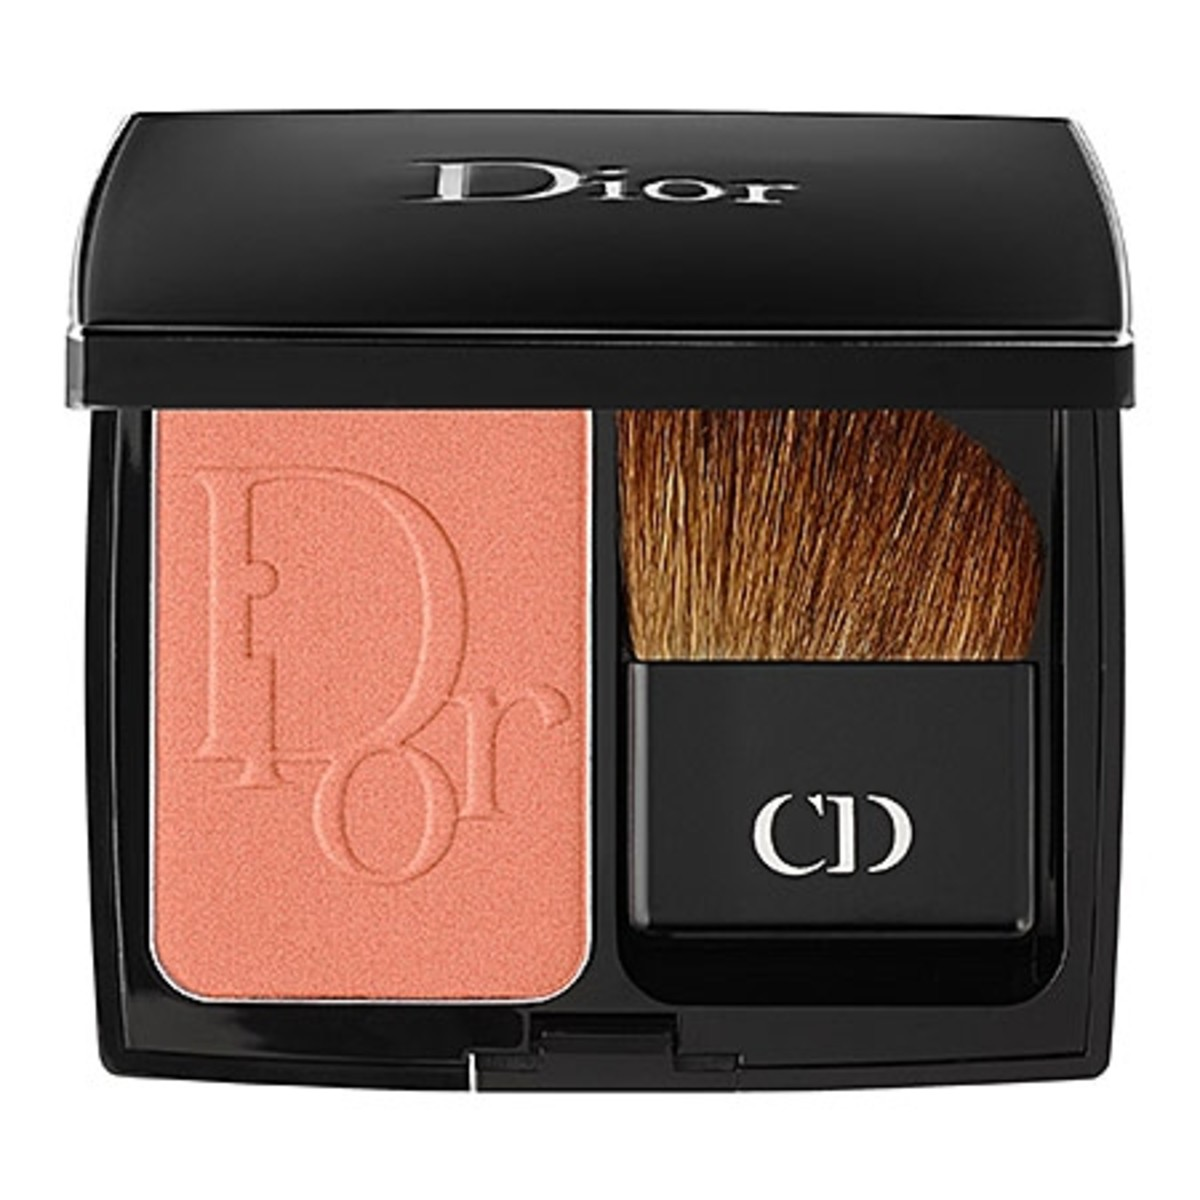 Dior Diorblush Vibrant Colour Powder Blush in My Rose